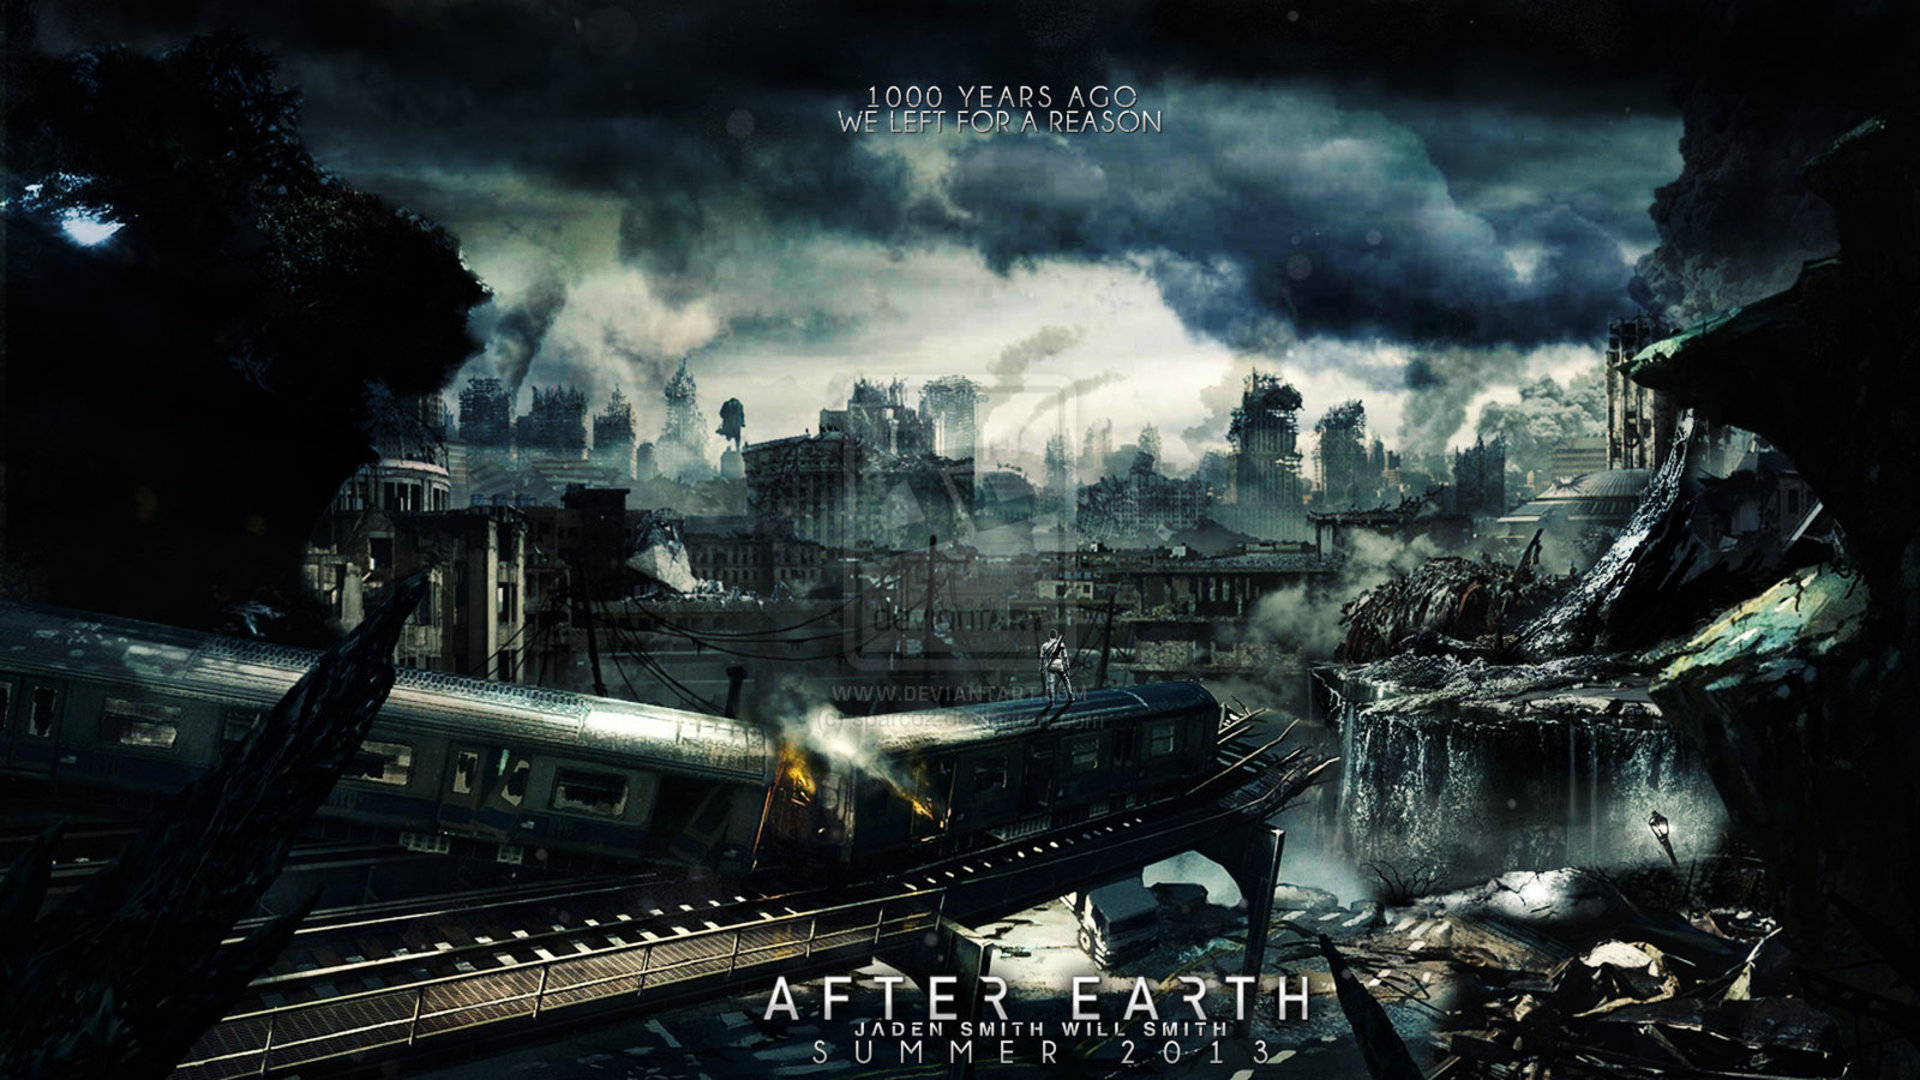 After Earth Movie 2013 Wallpapers HD 1920x1080 ImageBankbiz 1920x1080